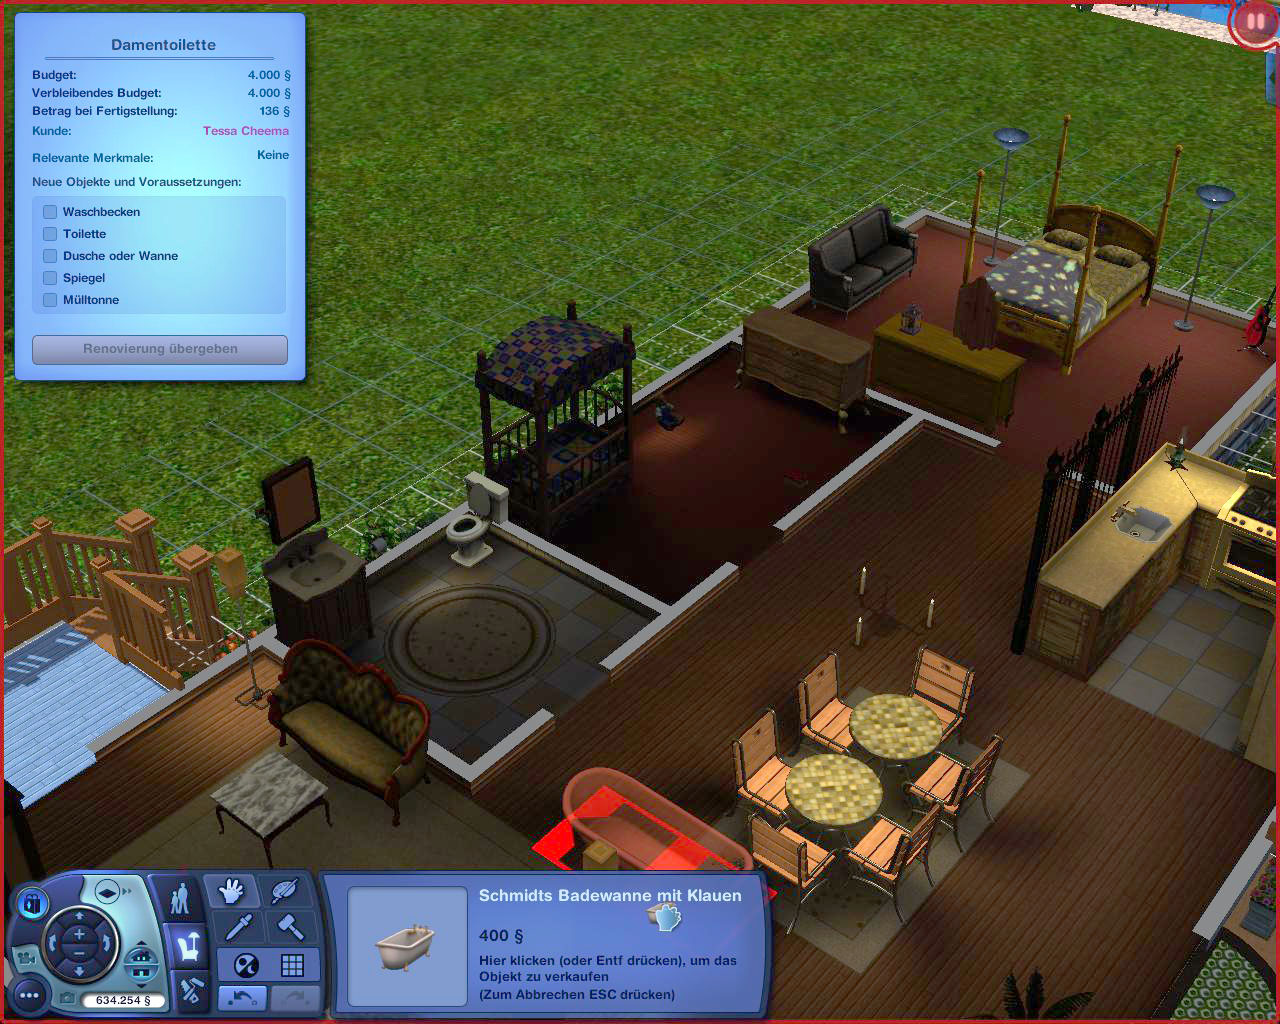 Image renovation the sims wiki for Renovation wiki